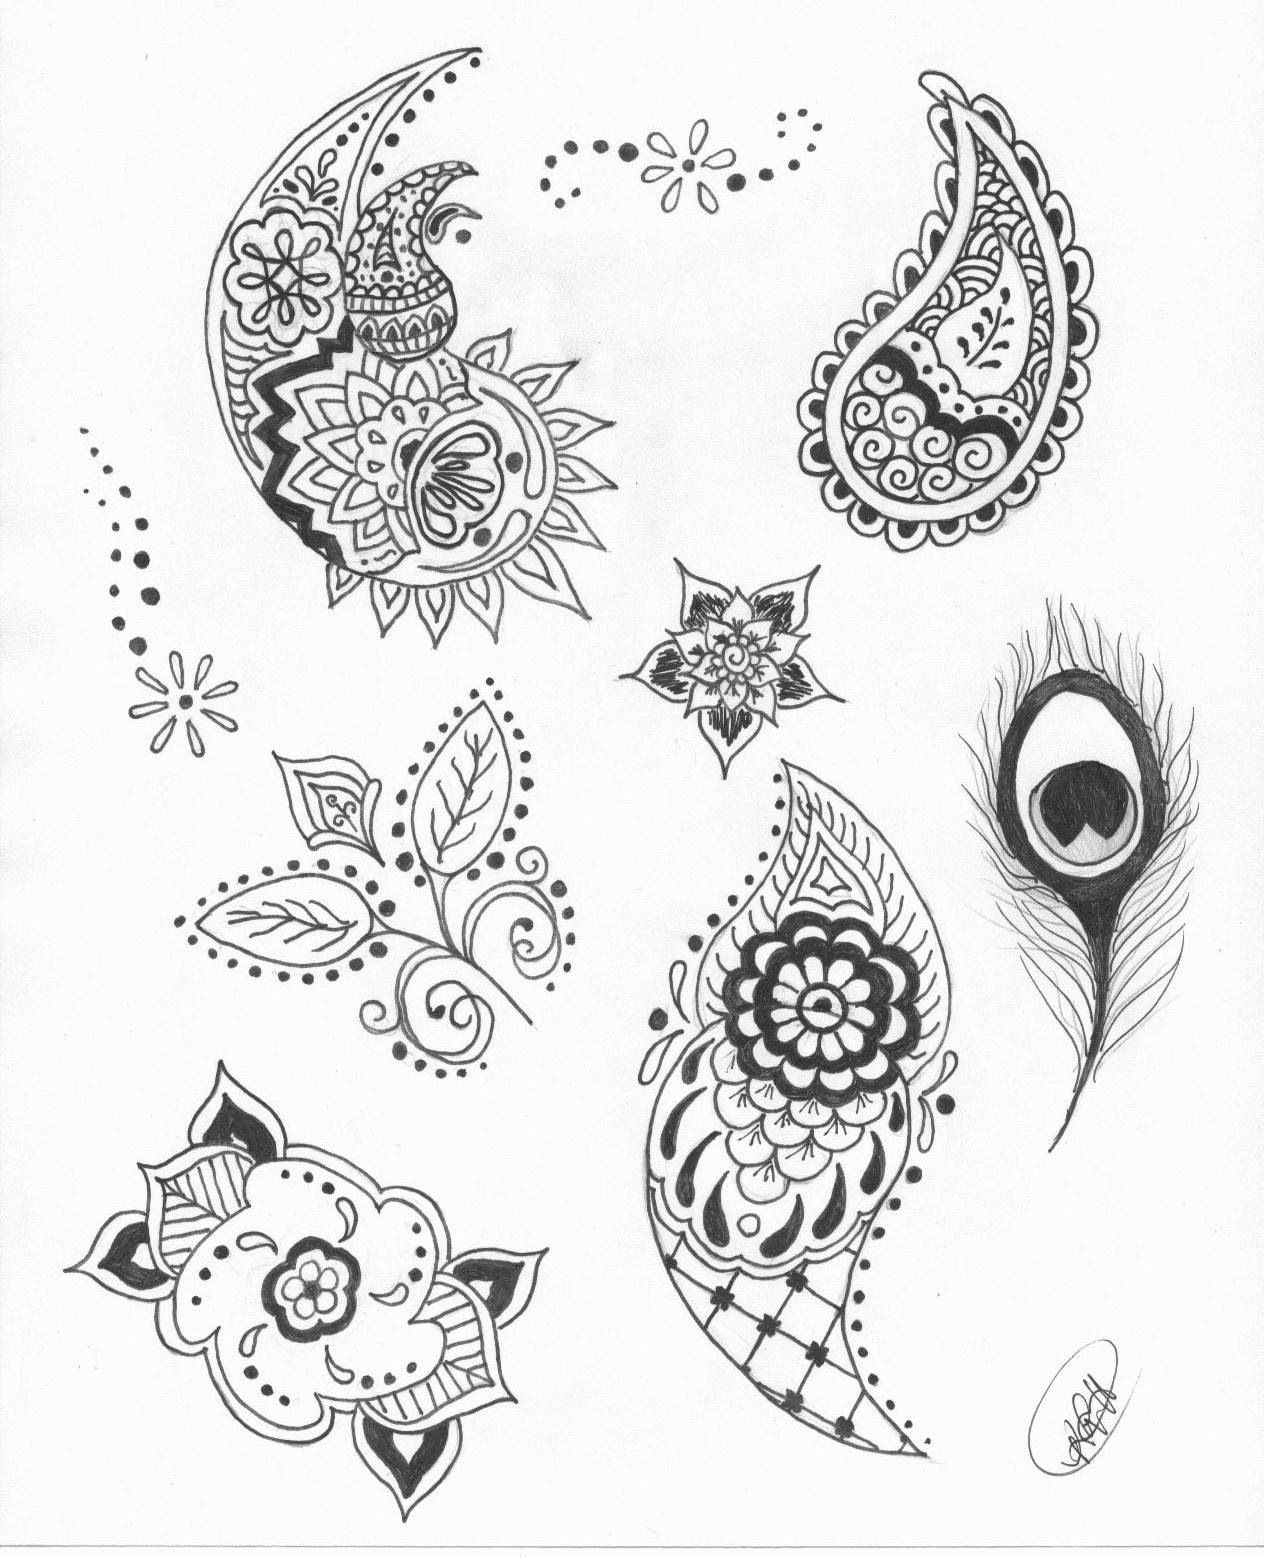 Henna Designs For Permanent Half Sleeve Made To Look Like Henna